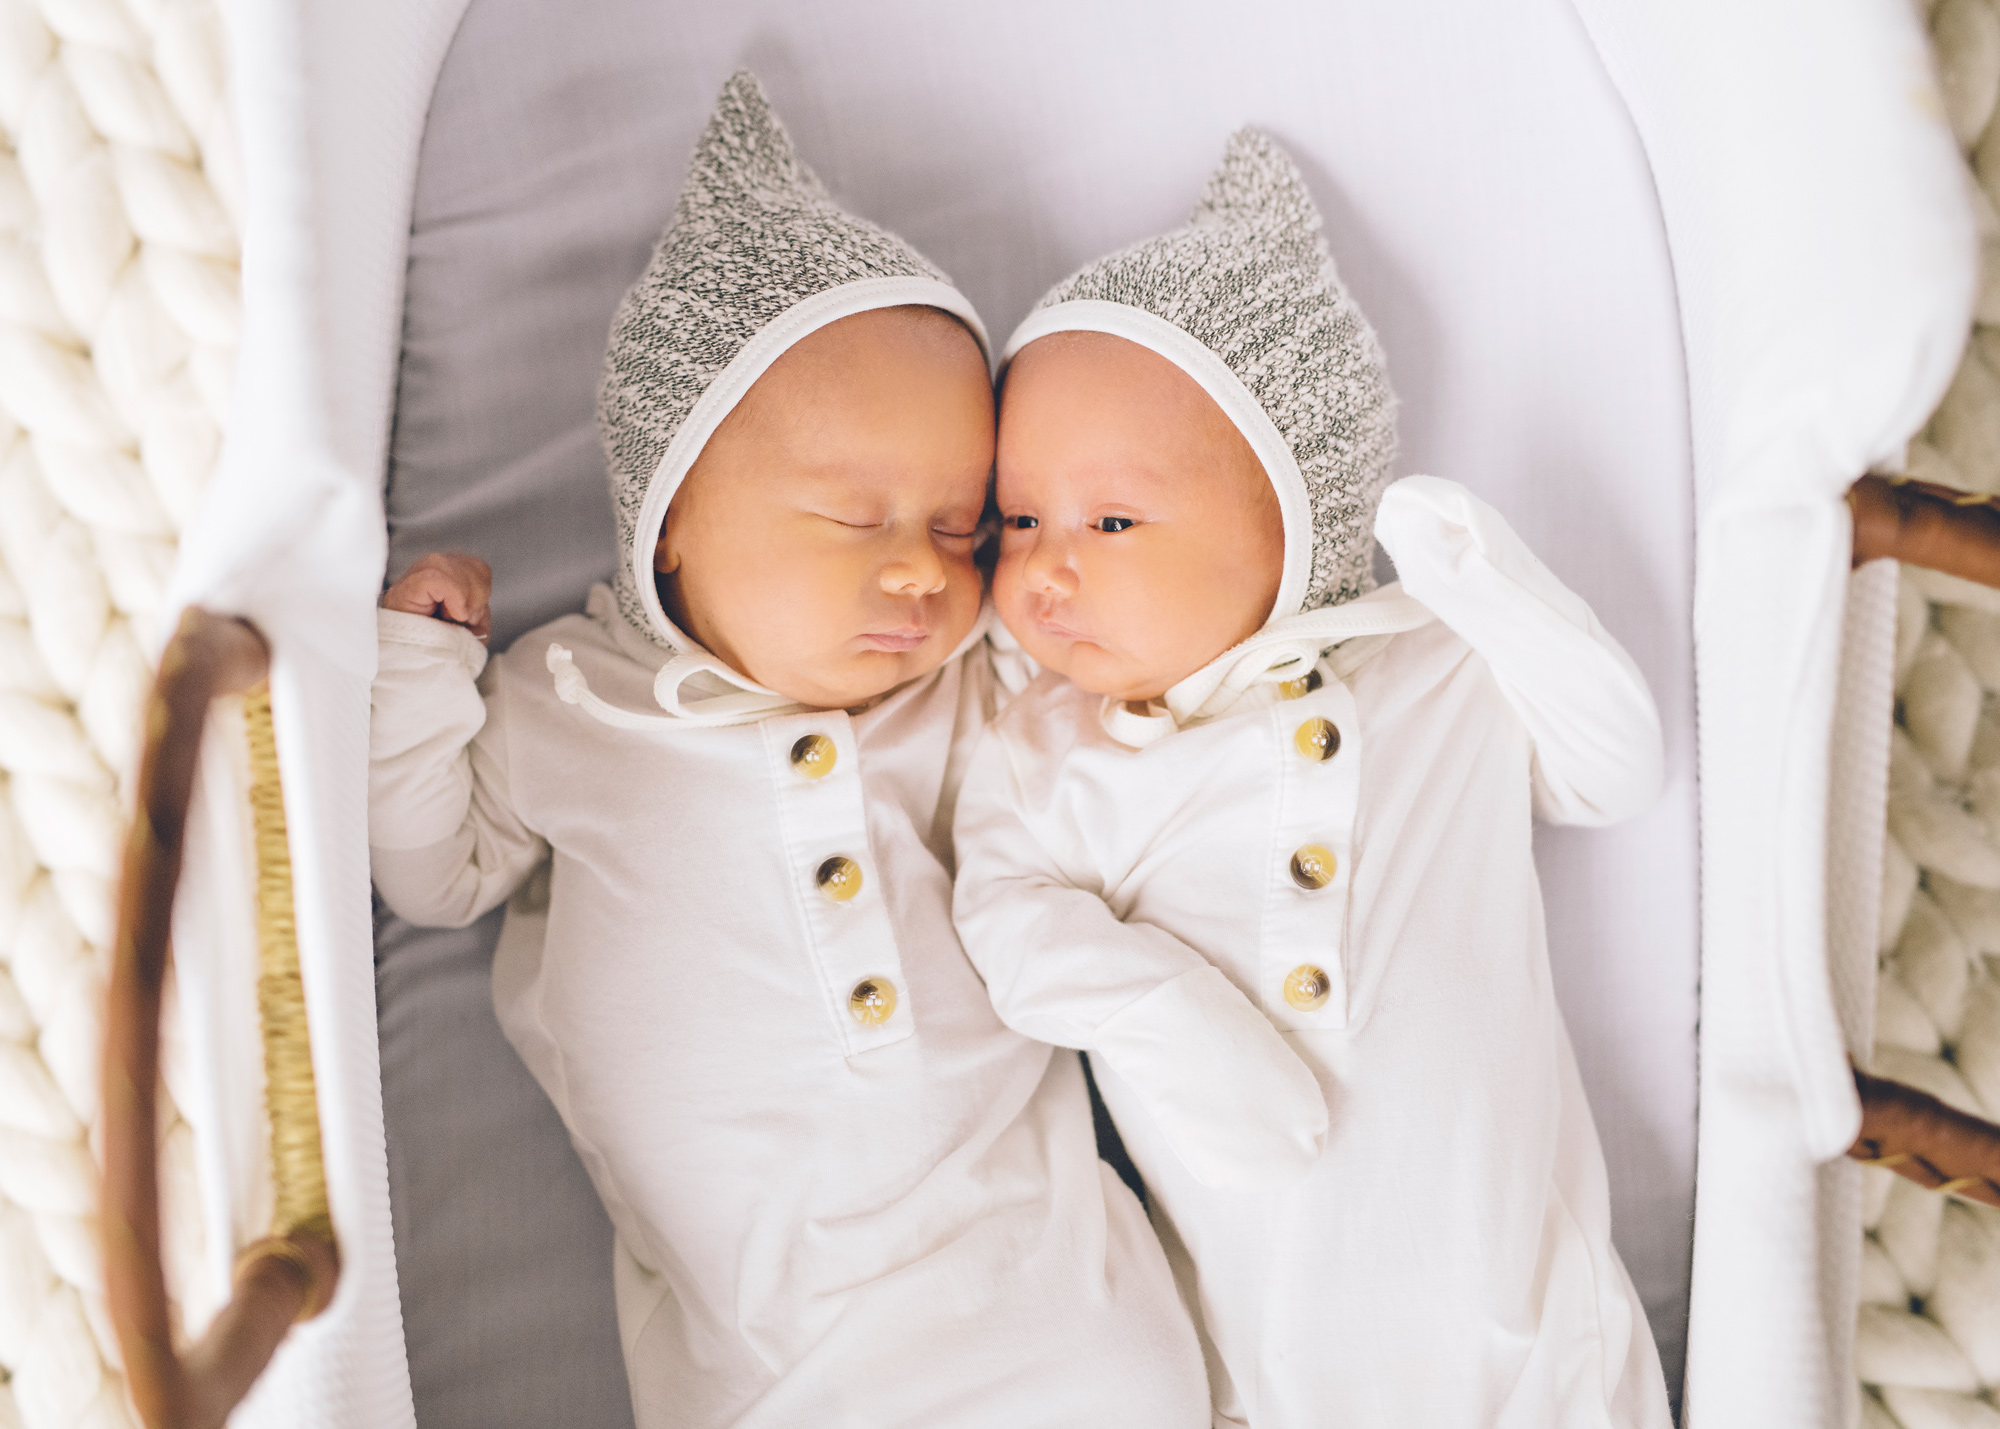 newborn-twins-photos-session.jpg